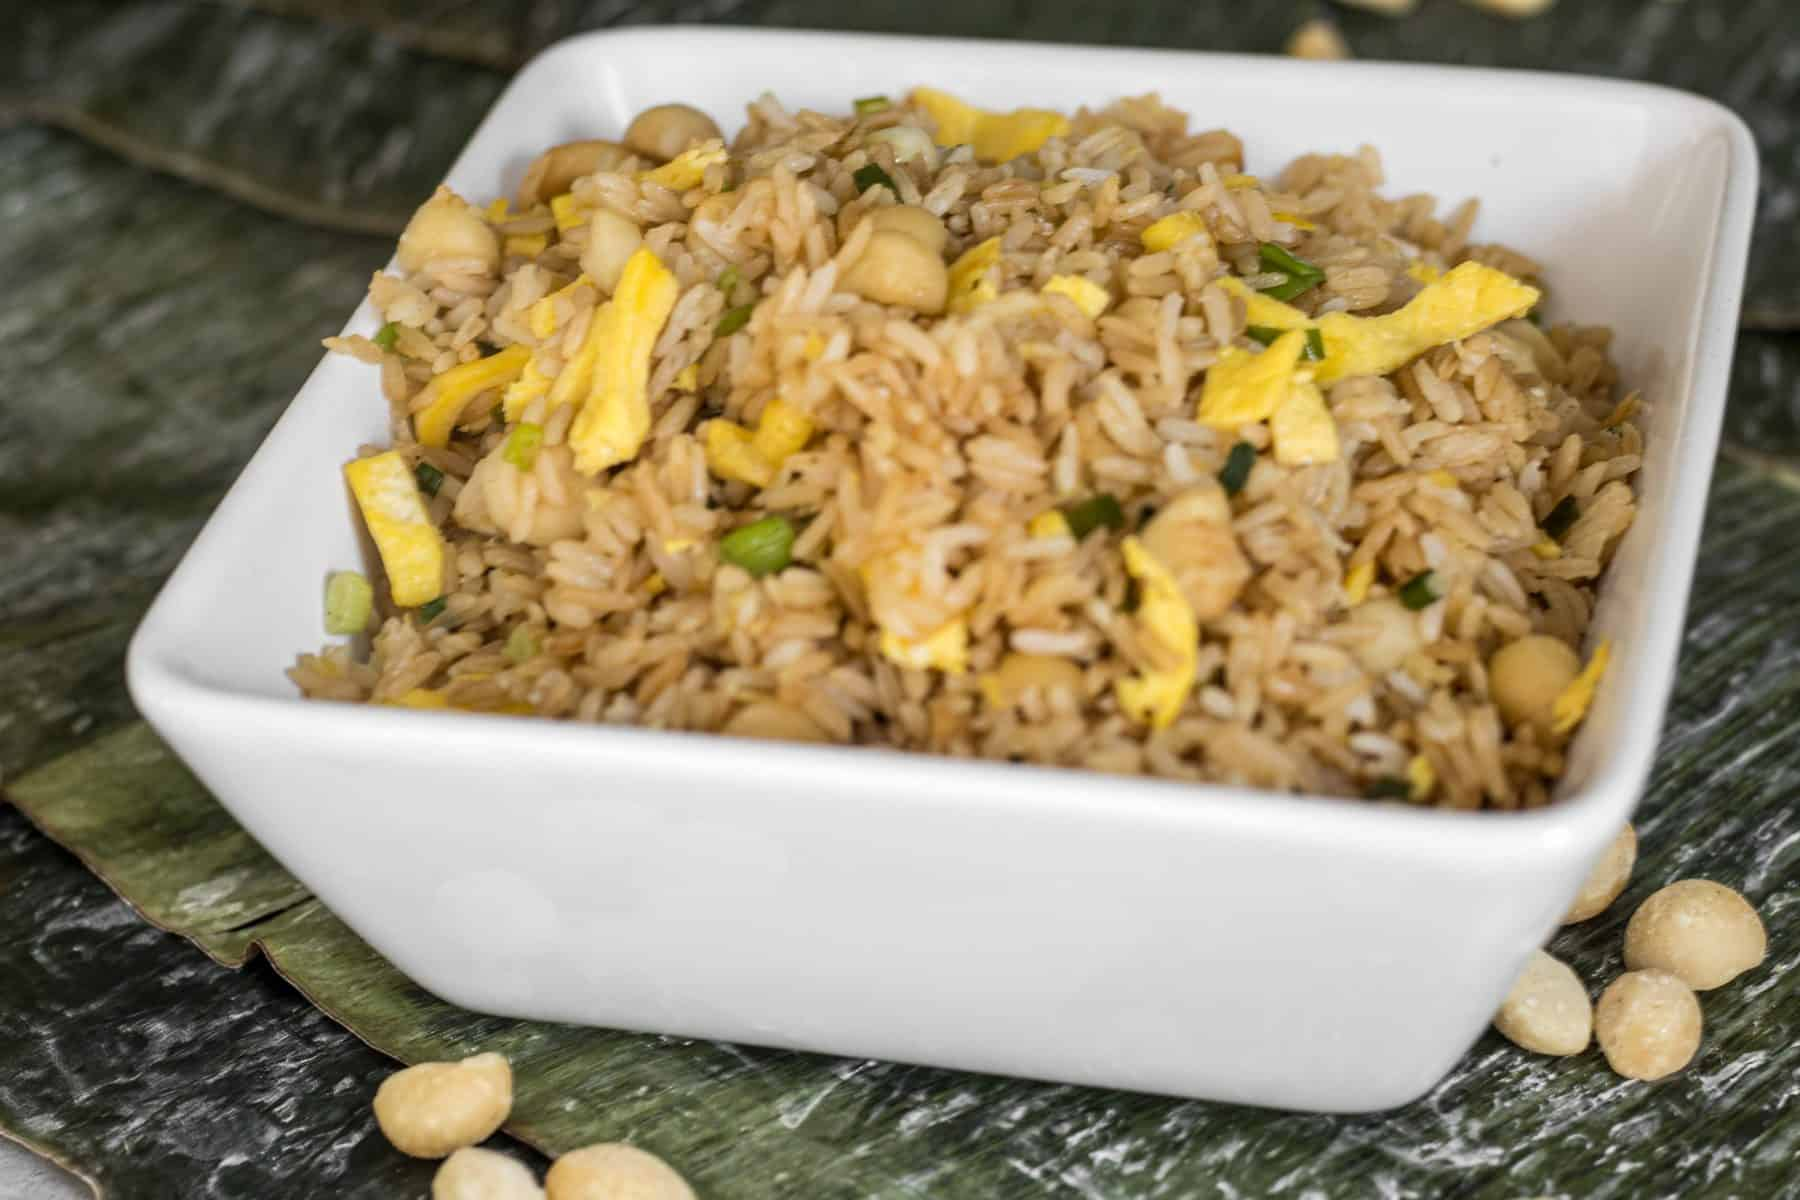 Macadamia Nut Fried Rice